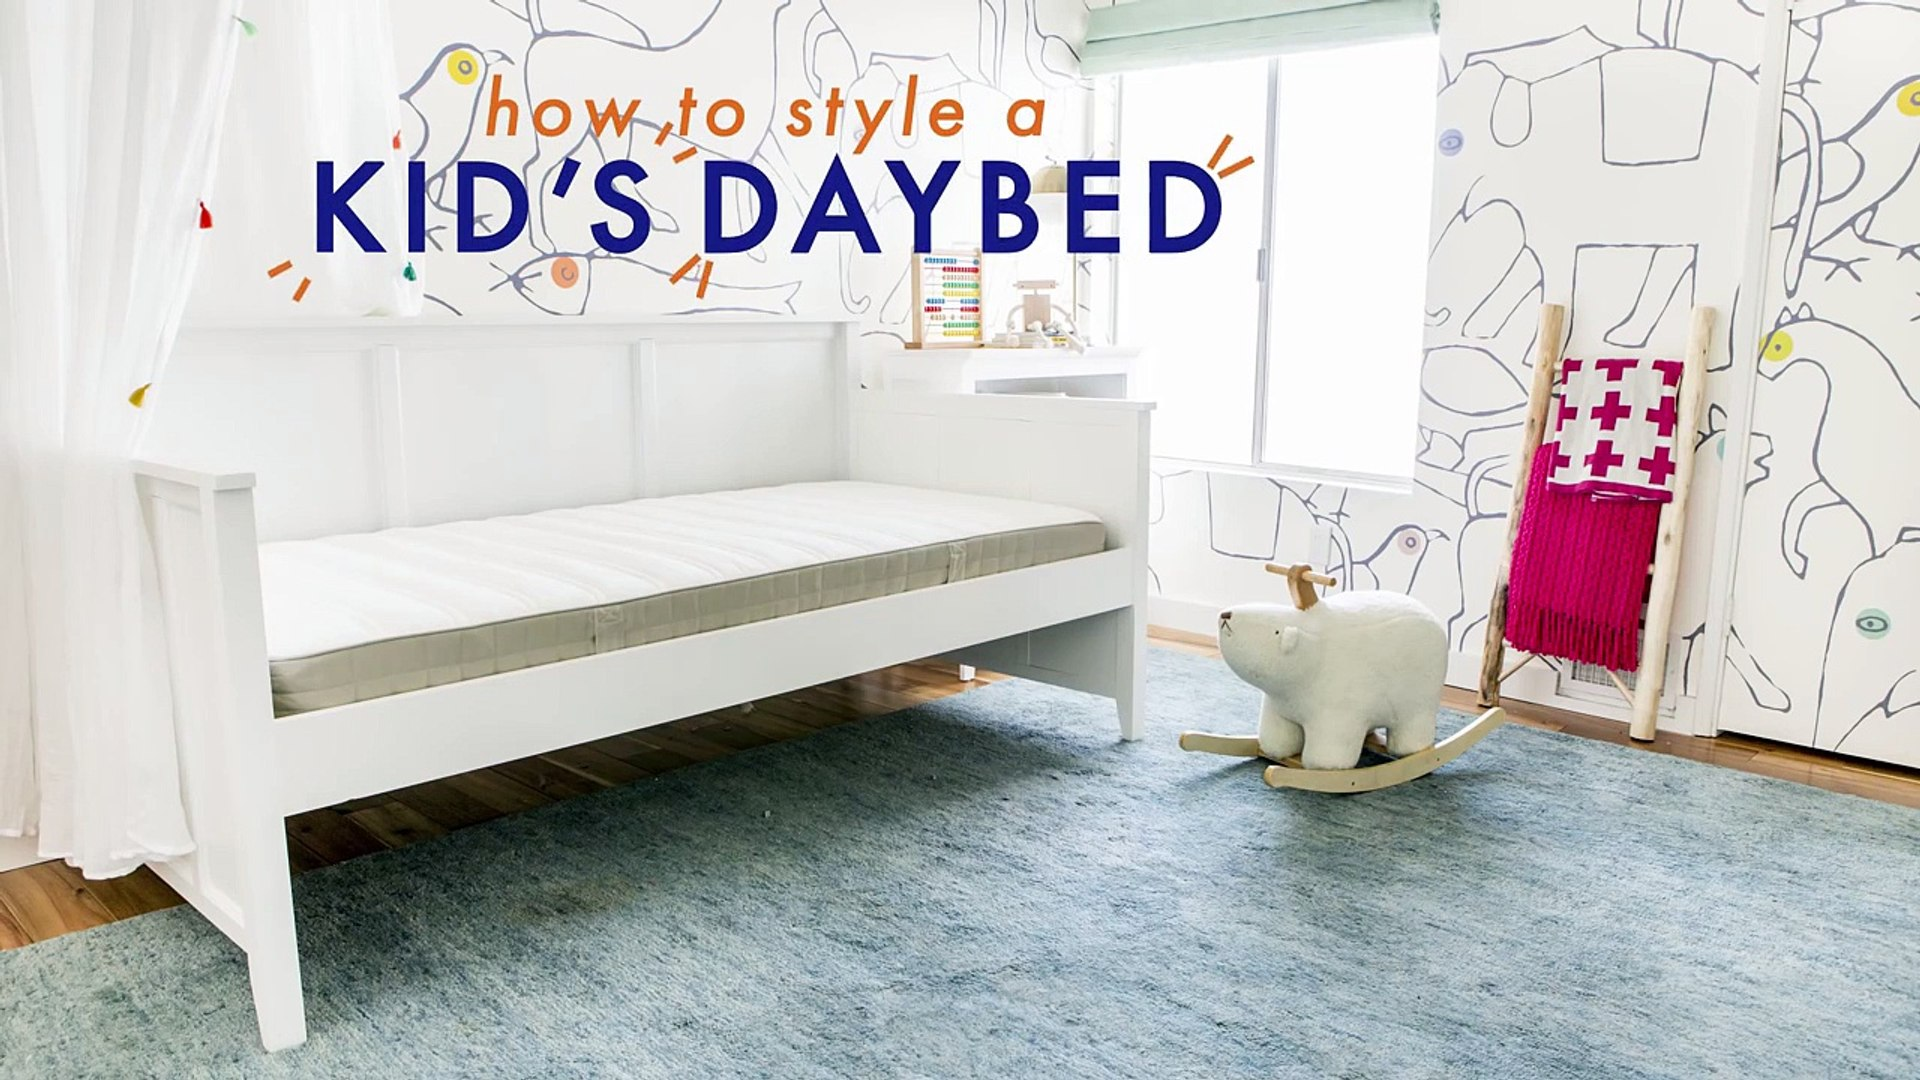 How To Style A Kid's Daybed-7u05